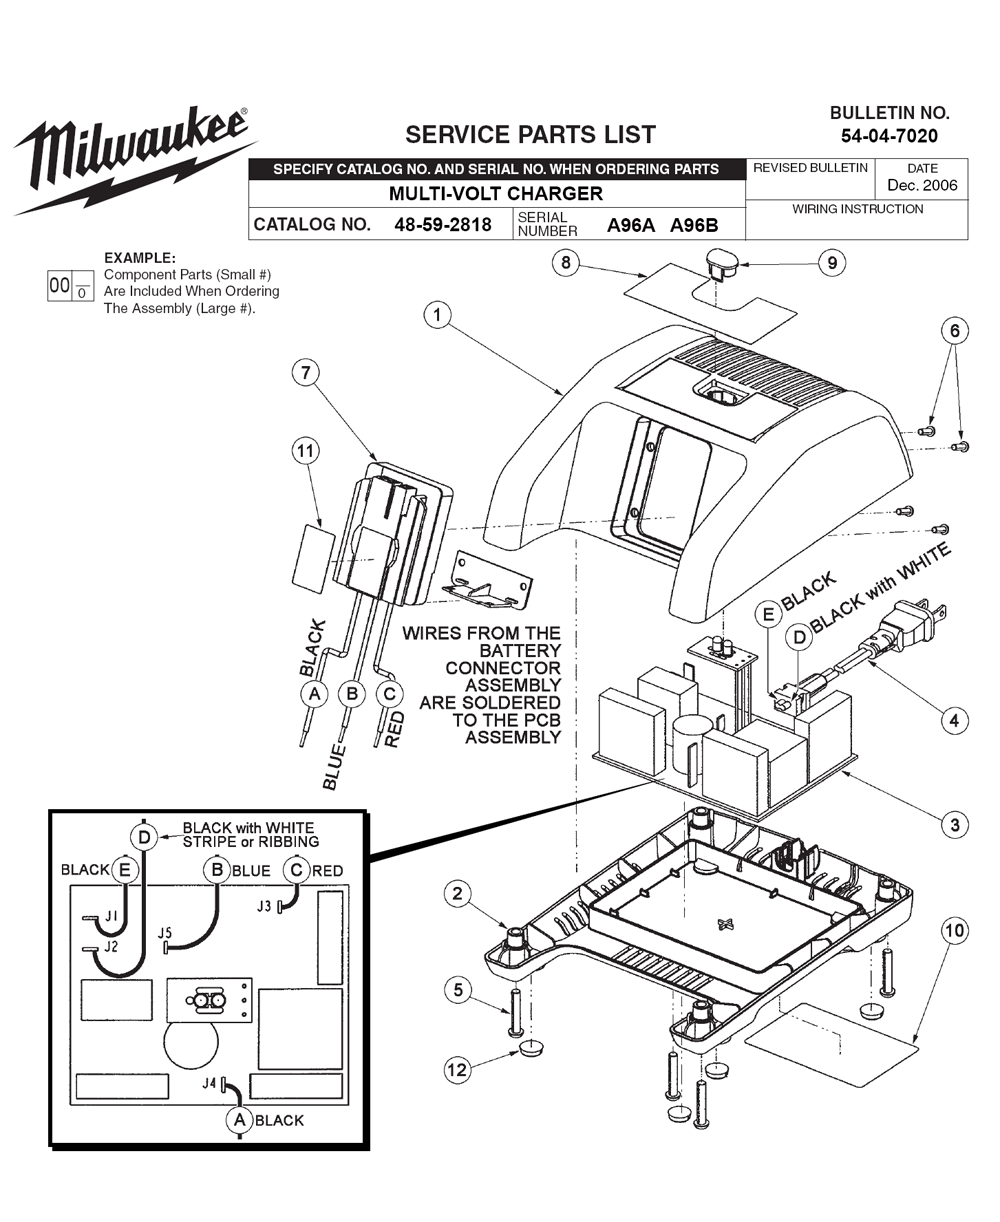 Nitro Engine Schematic further Parts in addition Hoover F5915900 Steamvac Spin Scrub Parts C 37315 37419 37426 together with Document in addition 96 Ford Explorer Window Motor Diagram. on jet 3 wiring diagram